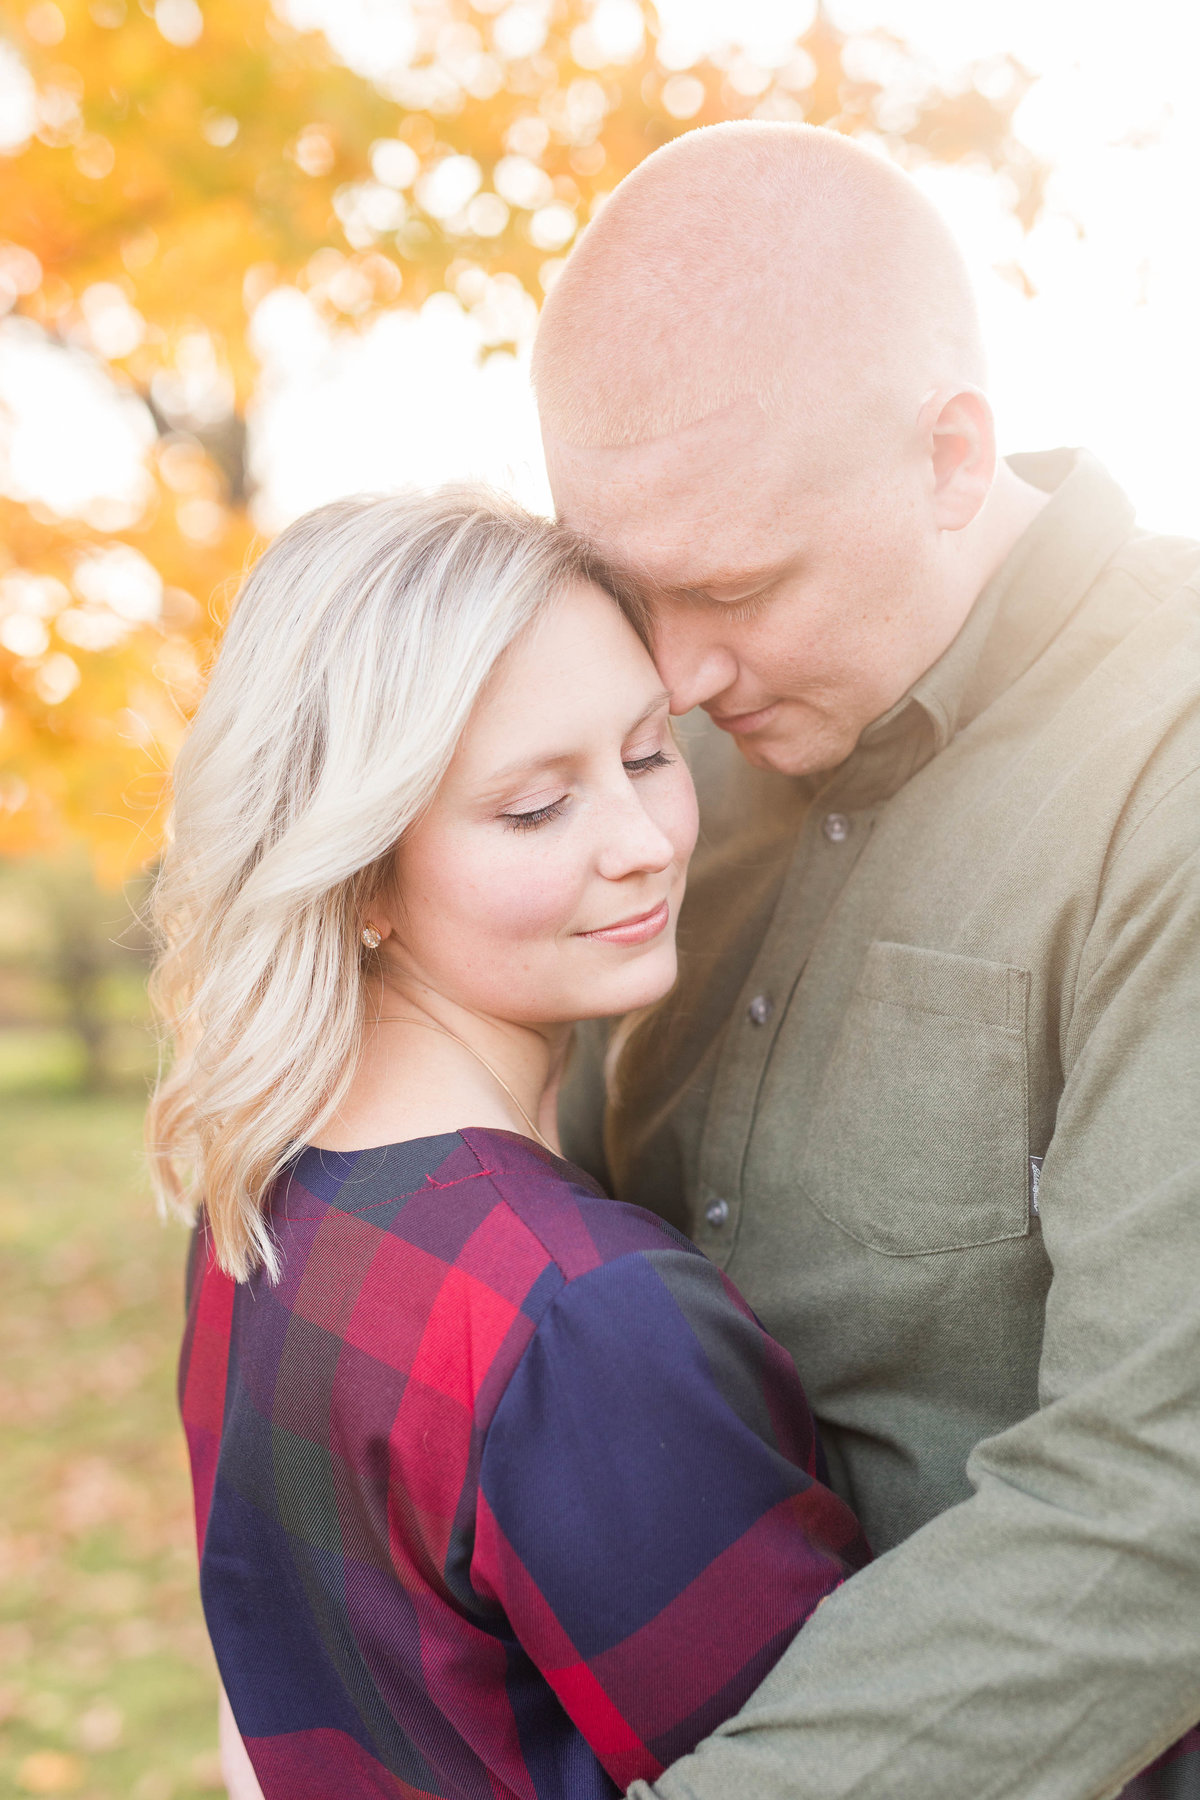 fall-countryside-engagement-session-katie-schubert-wisconsin-wedding-photographer-39